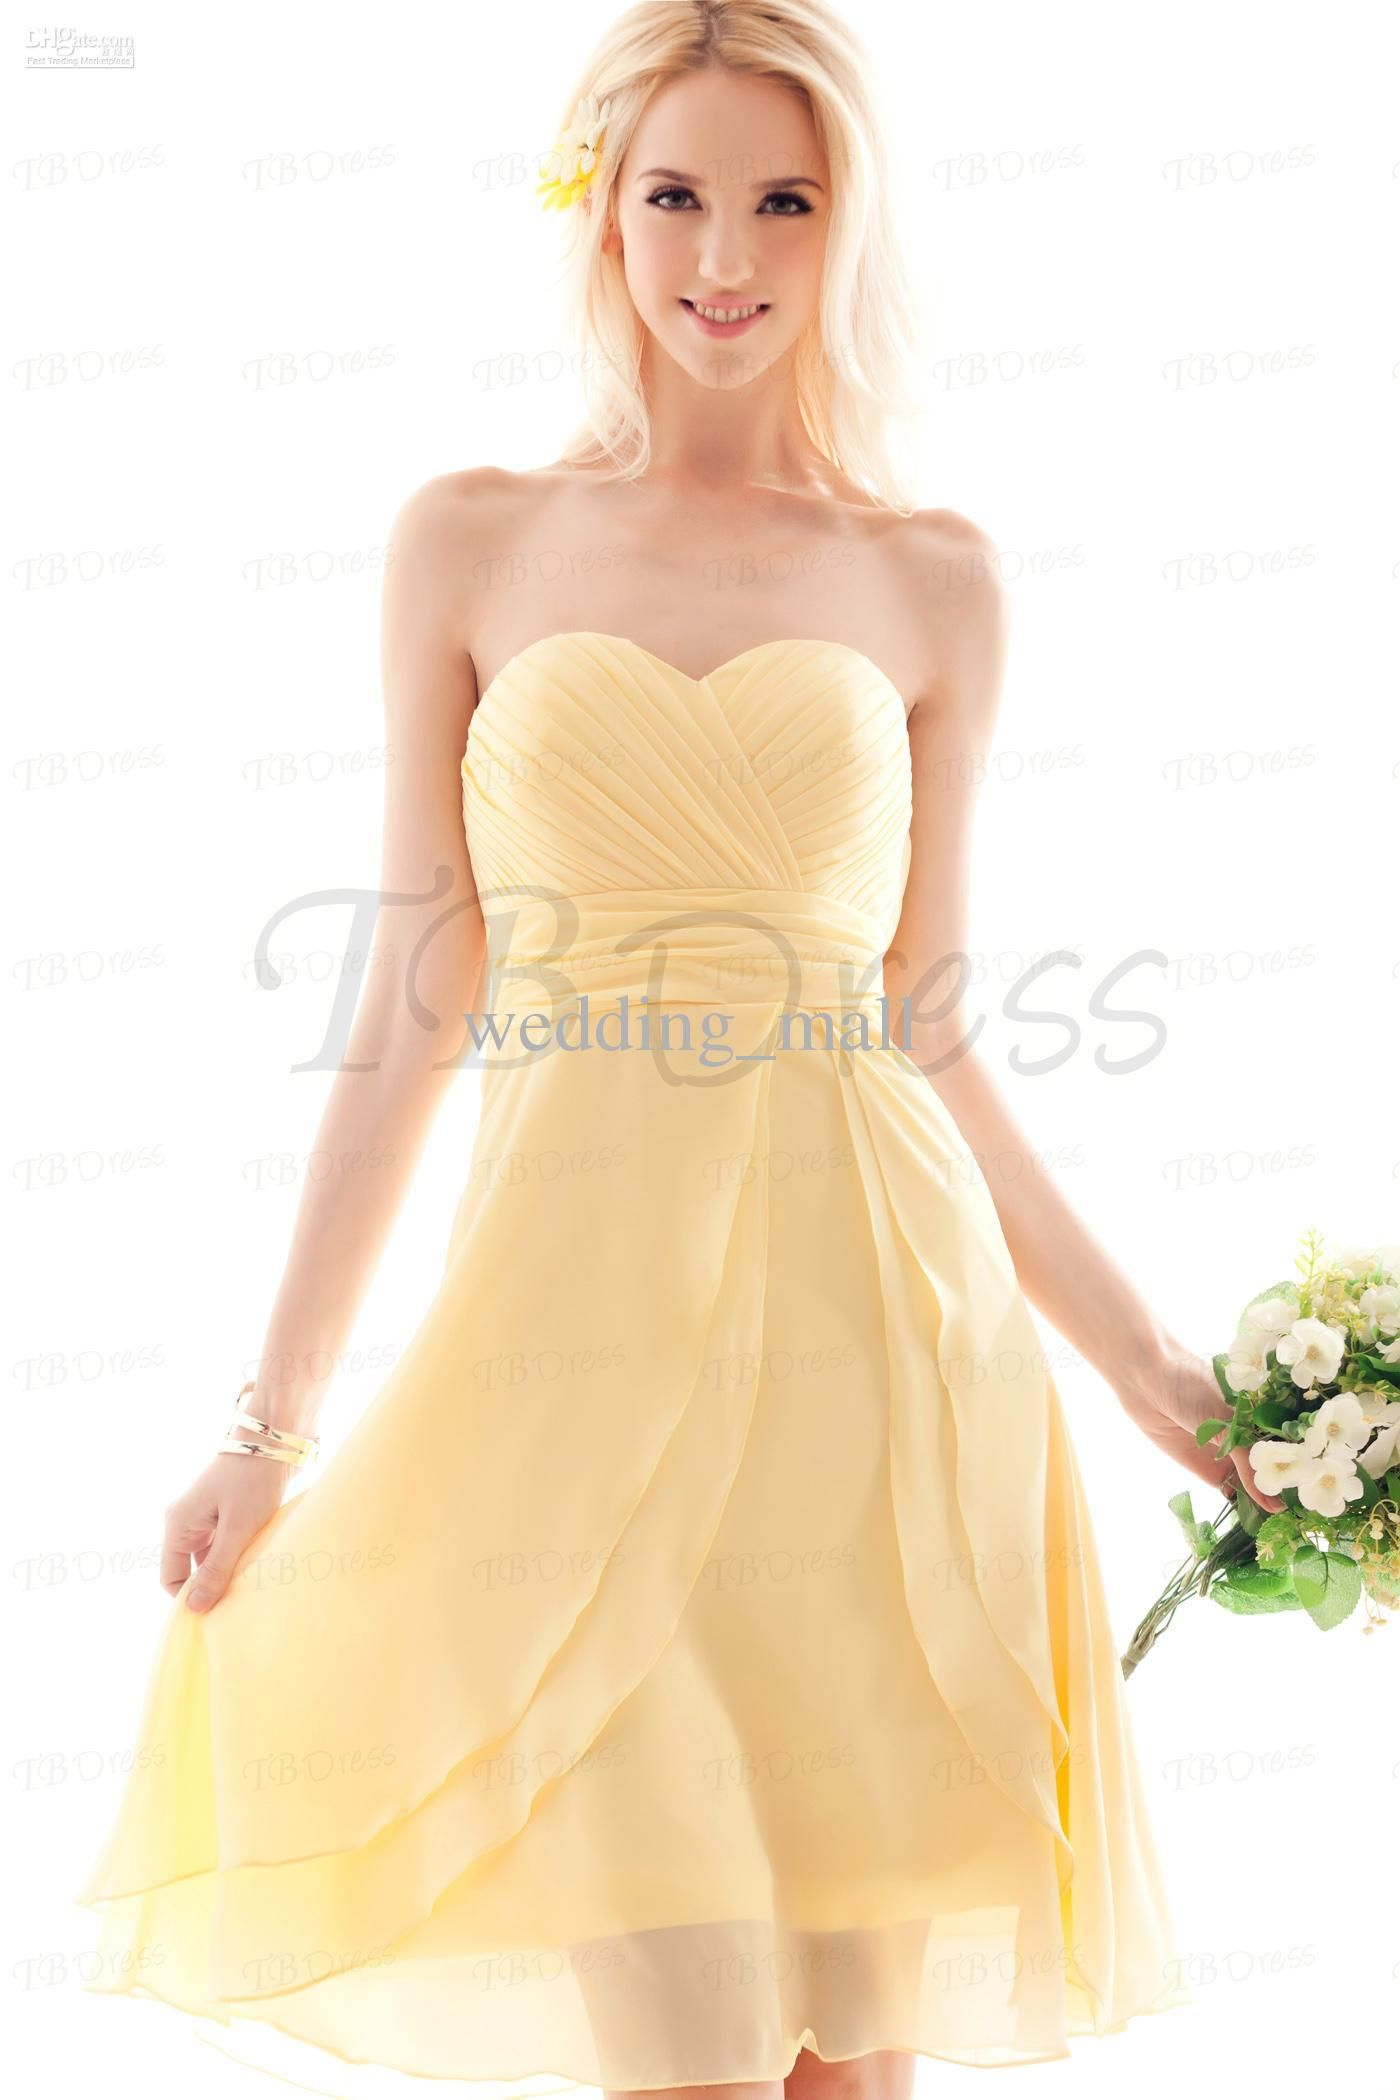 A Line Sweetheart Knee Length Pale Yellow Chiffon Pleated Beach Bridesmaid Dresses Discount Homecoming Dresses Short Party Flower Girl Junior Bridesmaid Dresses Yellow Bridesmaid Dresses Yellow Bridesmaid Dresses Short Pastel Yellow